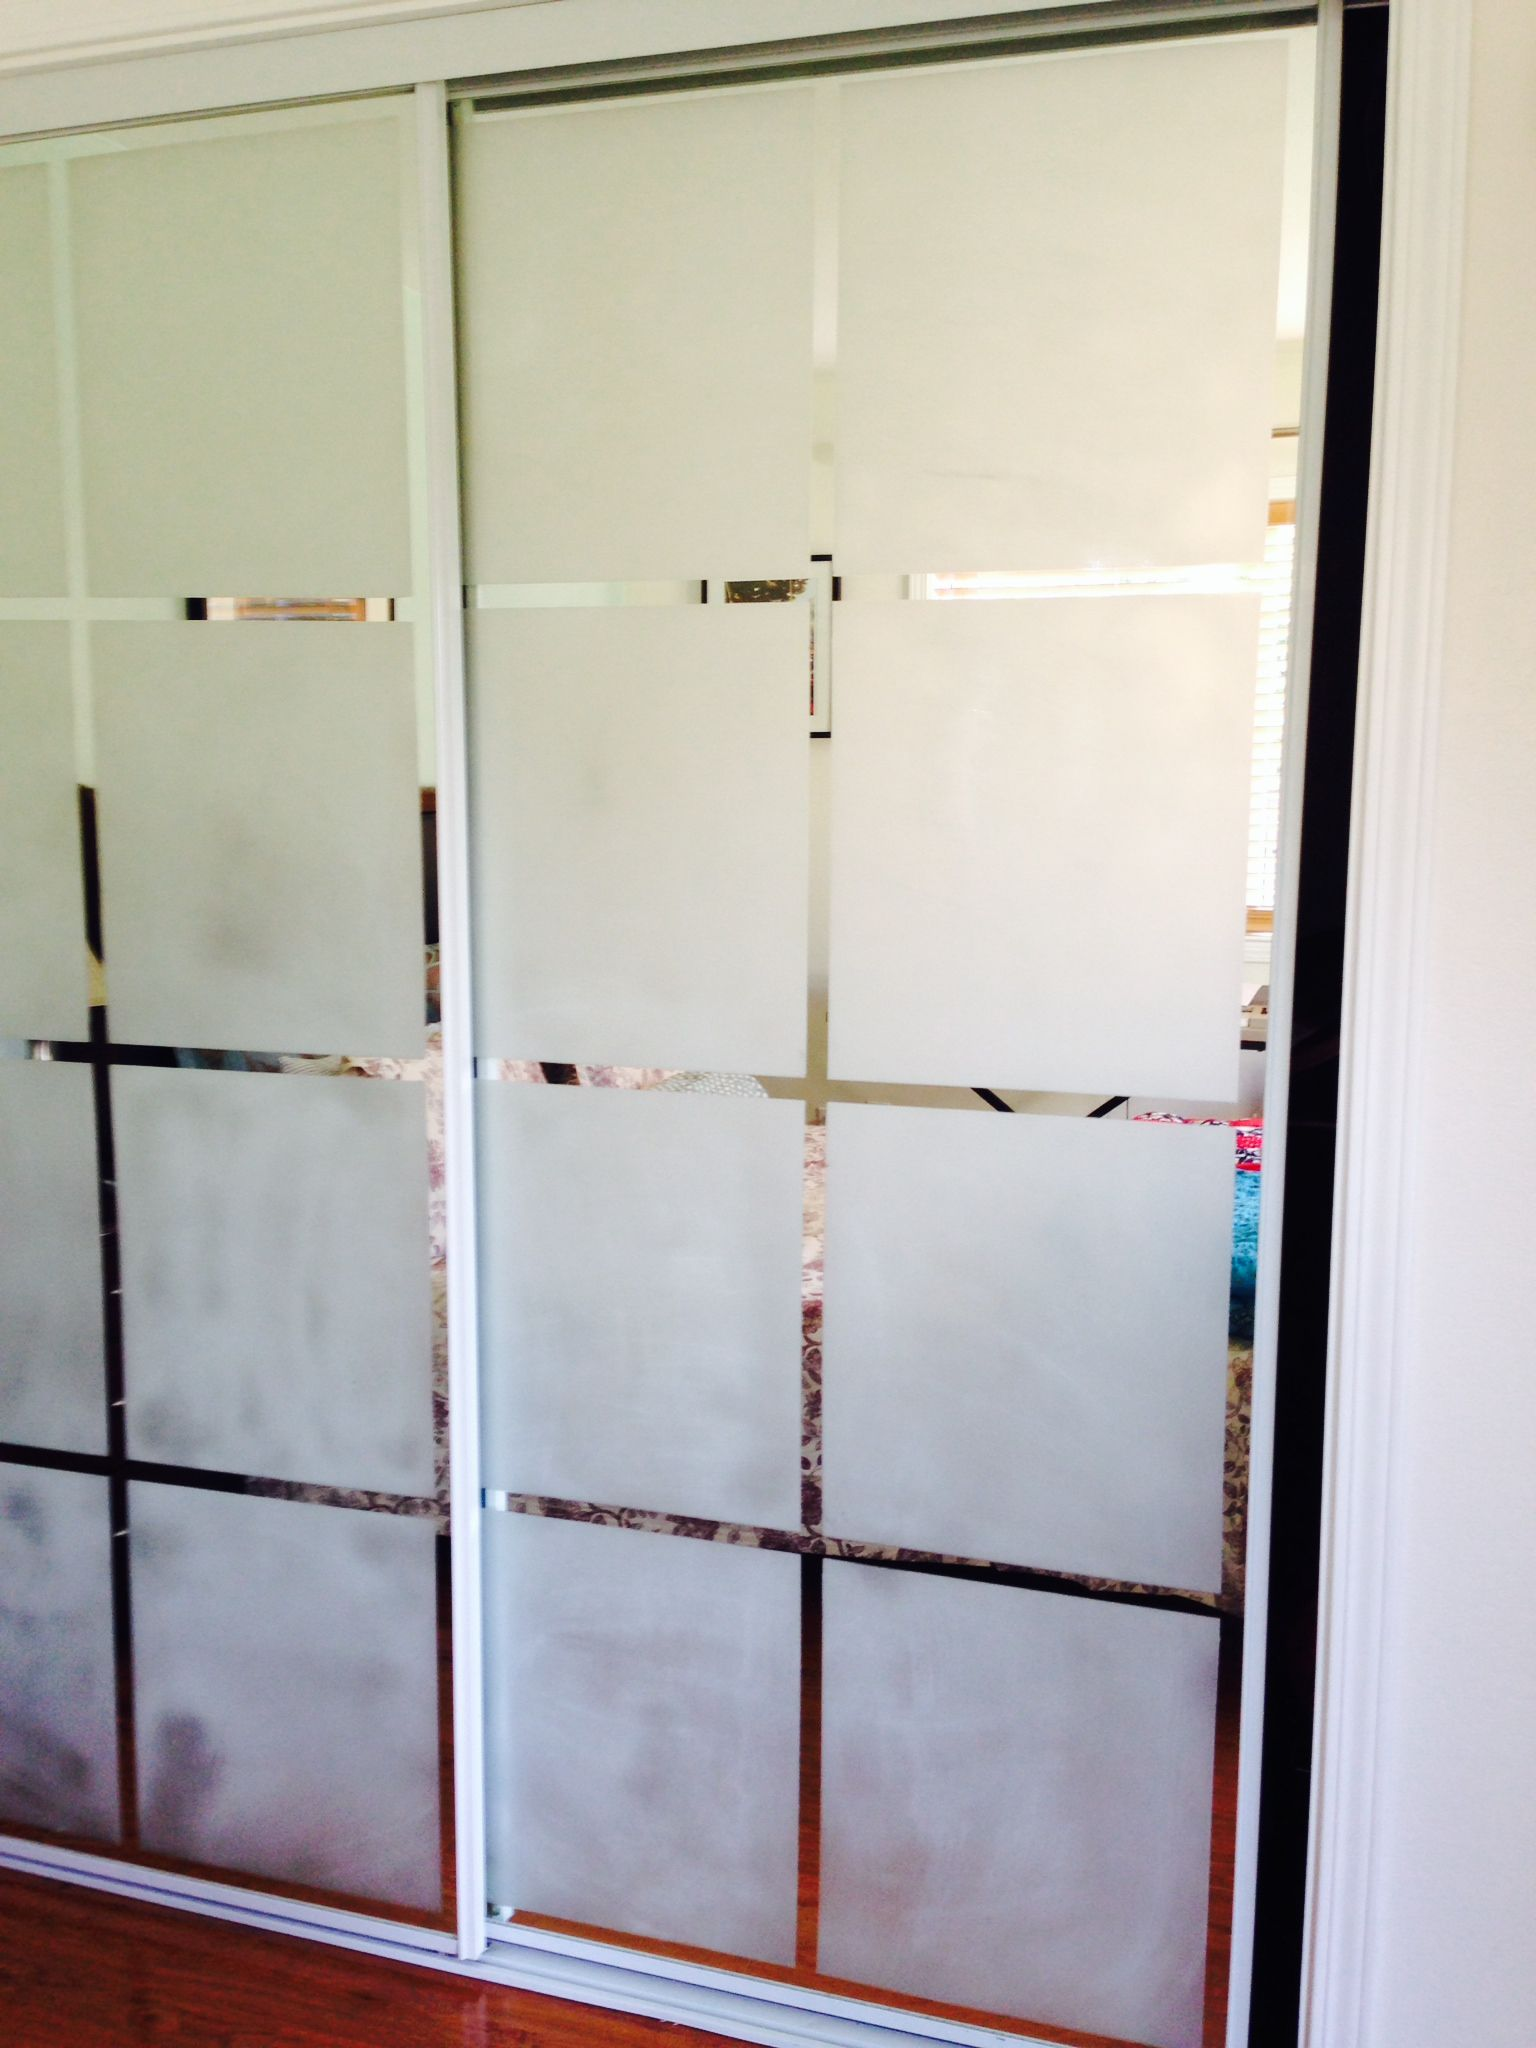 Fine Diy Frosted Glass Shower Doors Old Mirror Closet Give It A Style Statement With Just Some To Inspiration